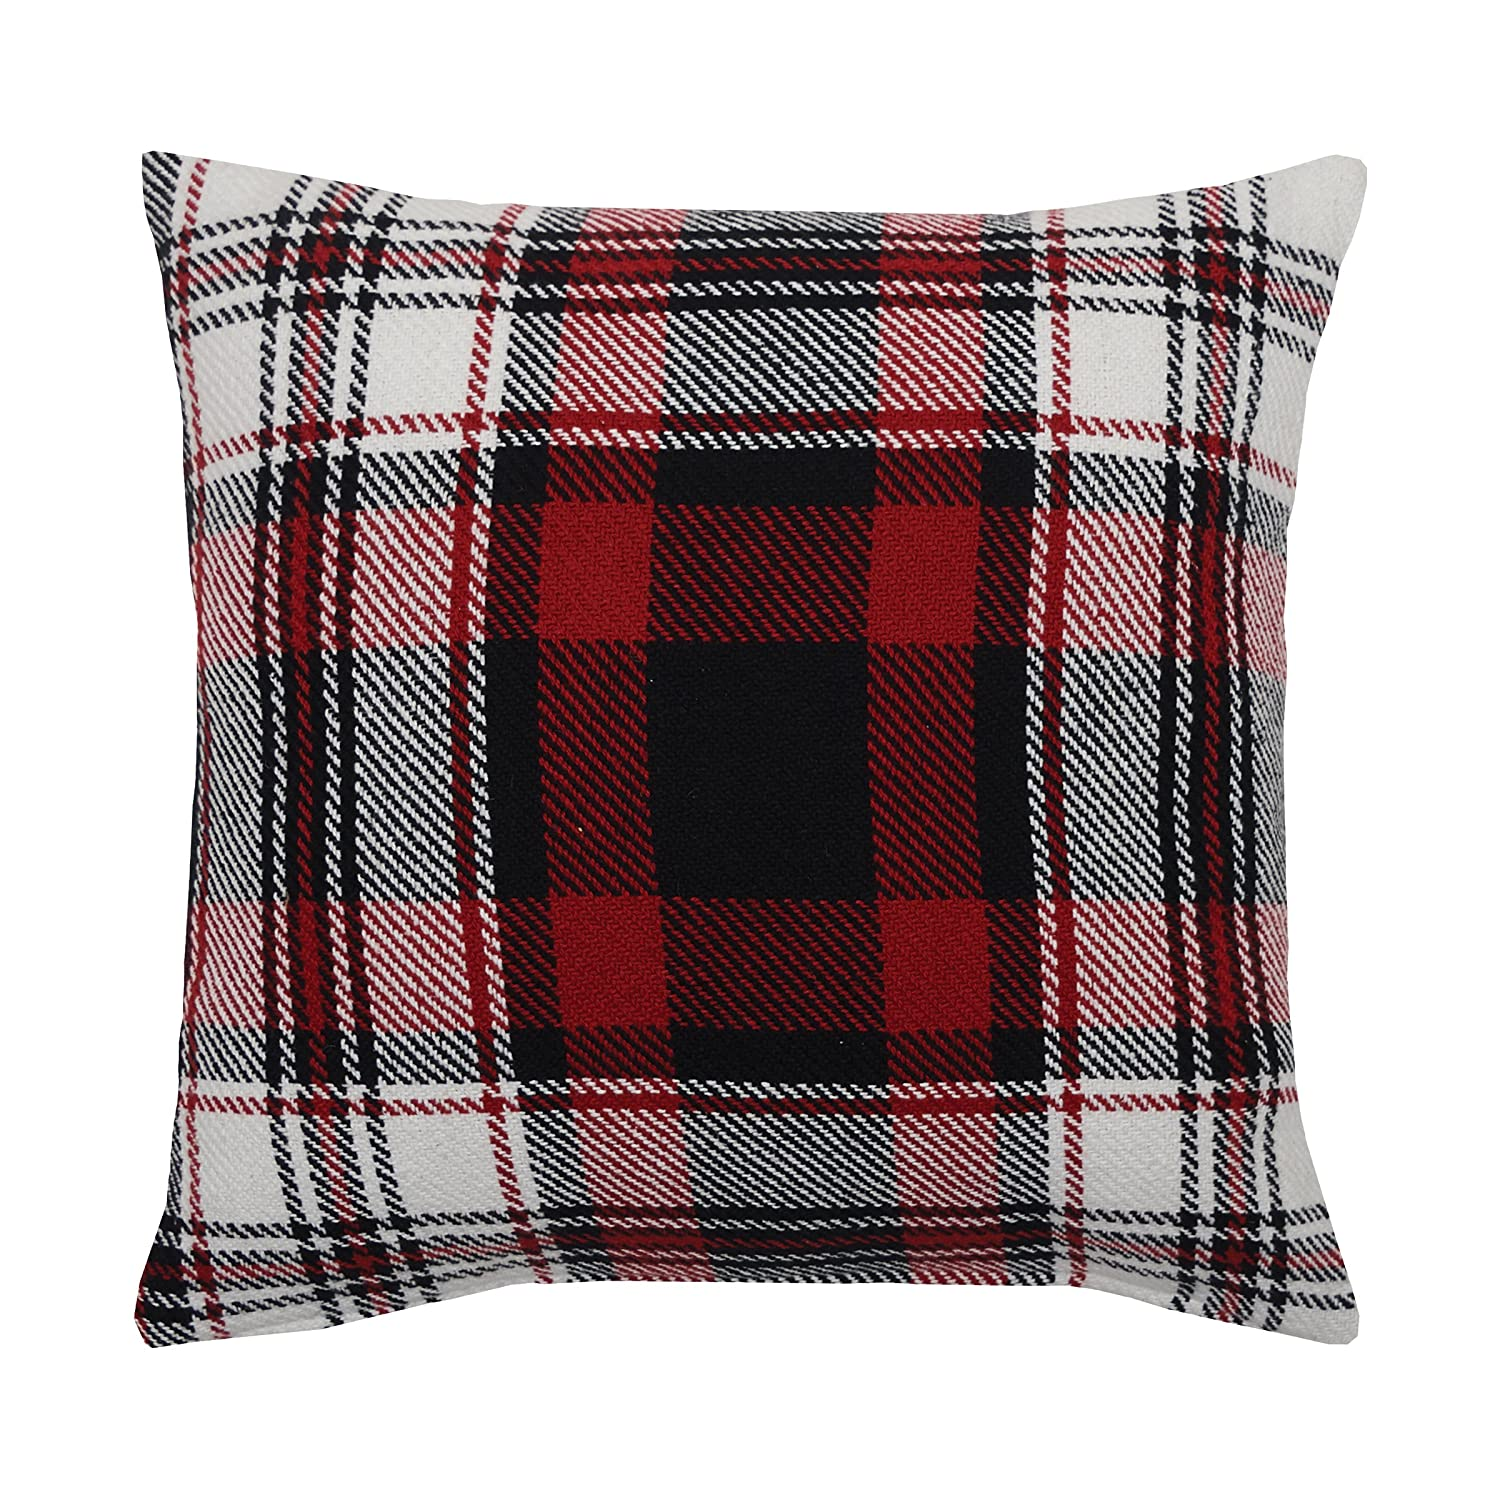 Red, black, and white plaid throw pillow